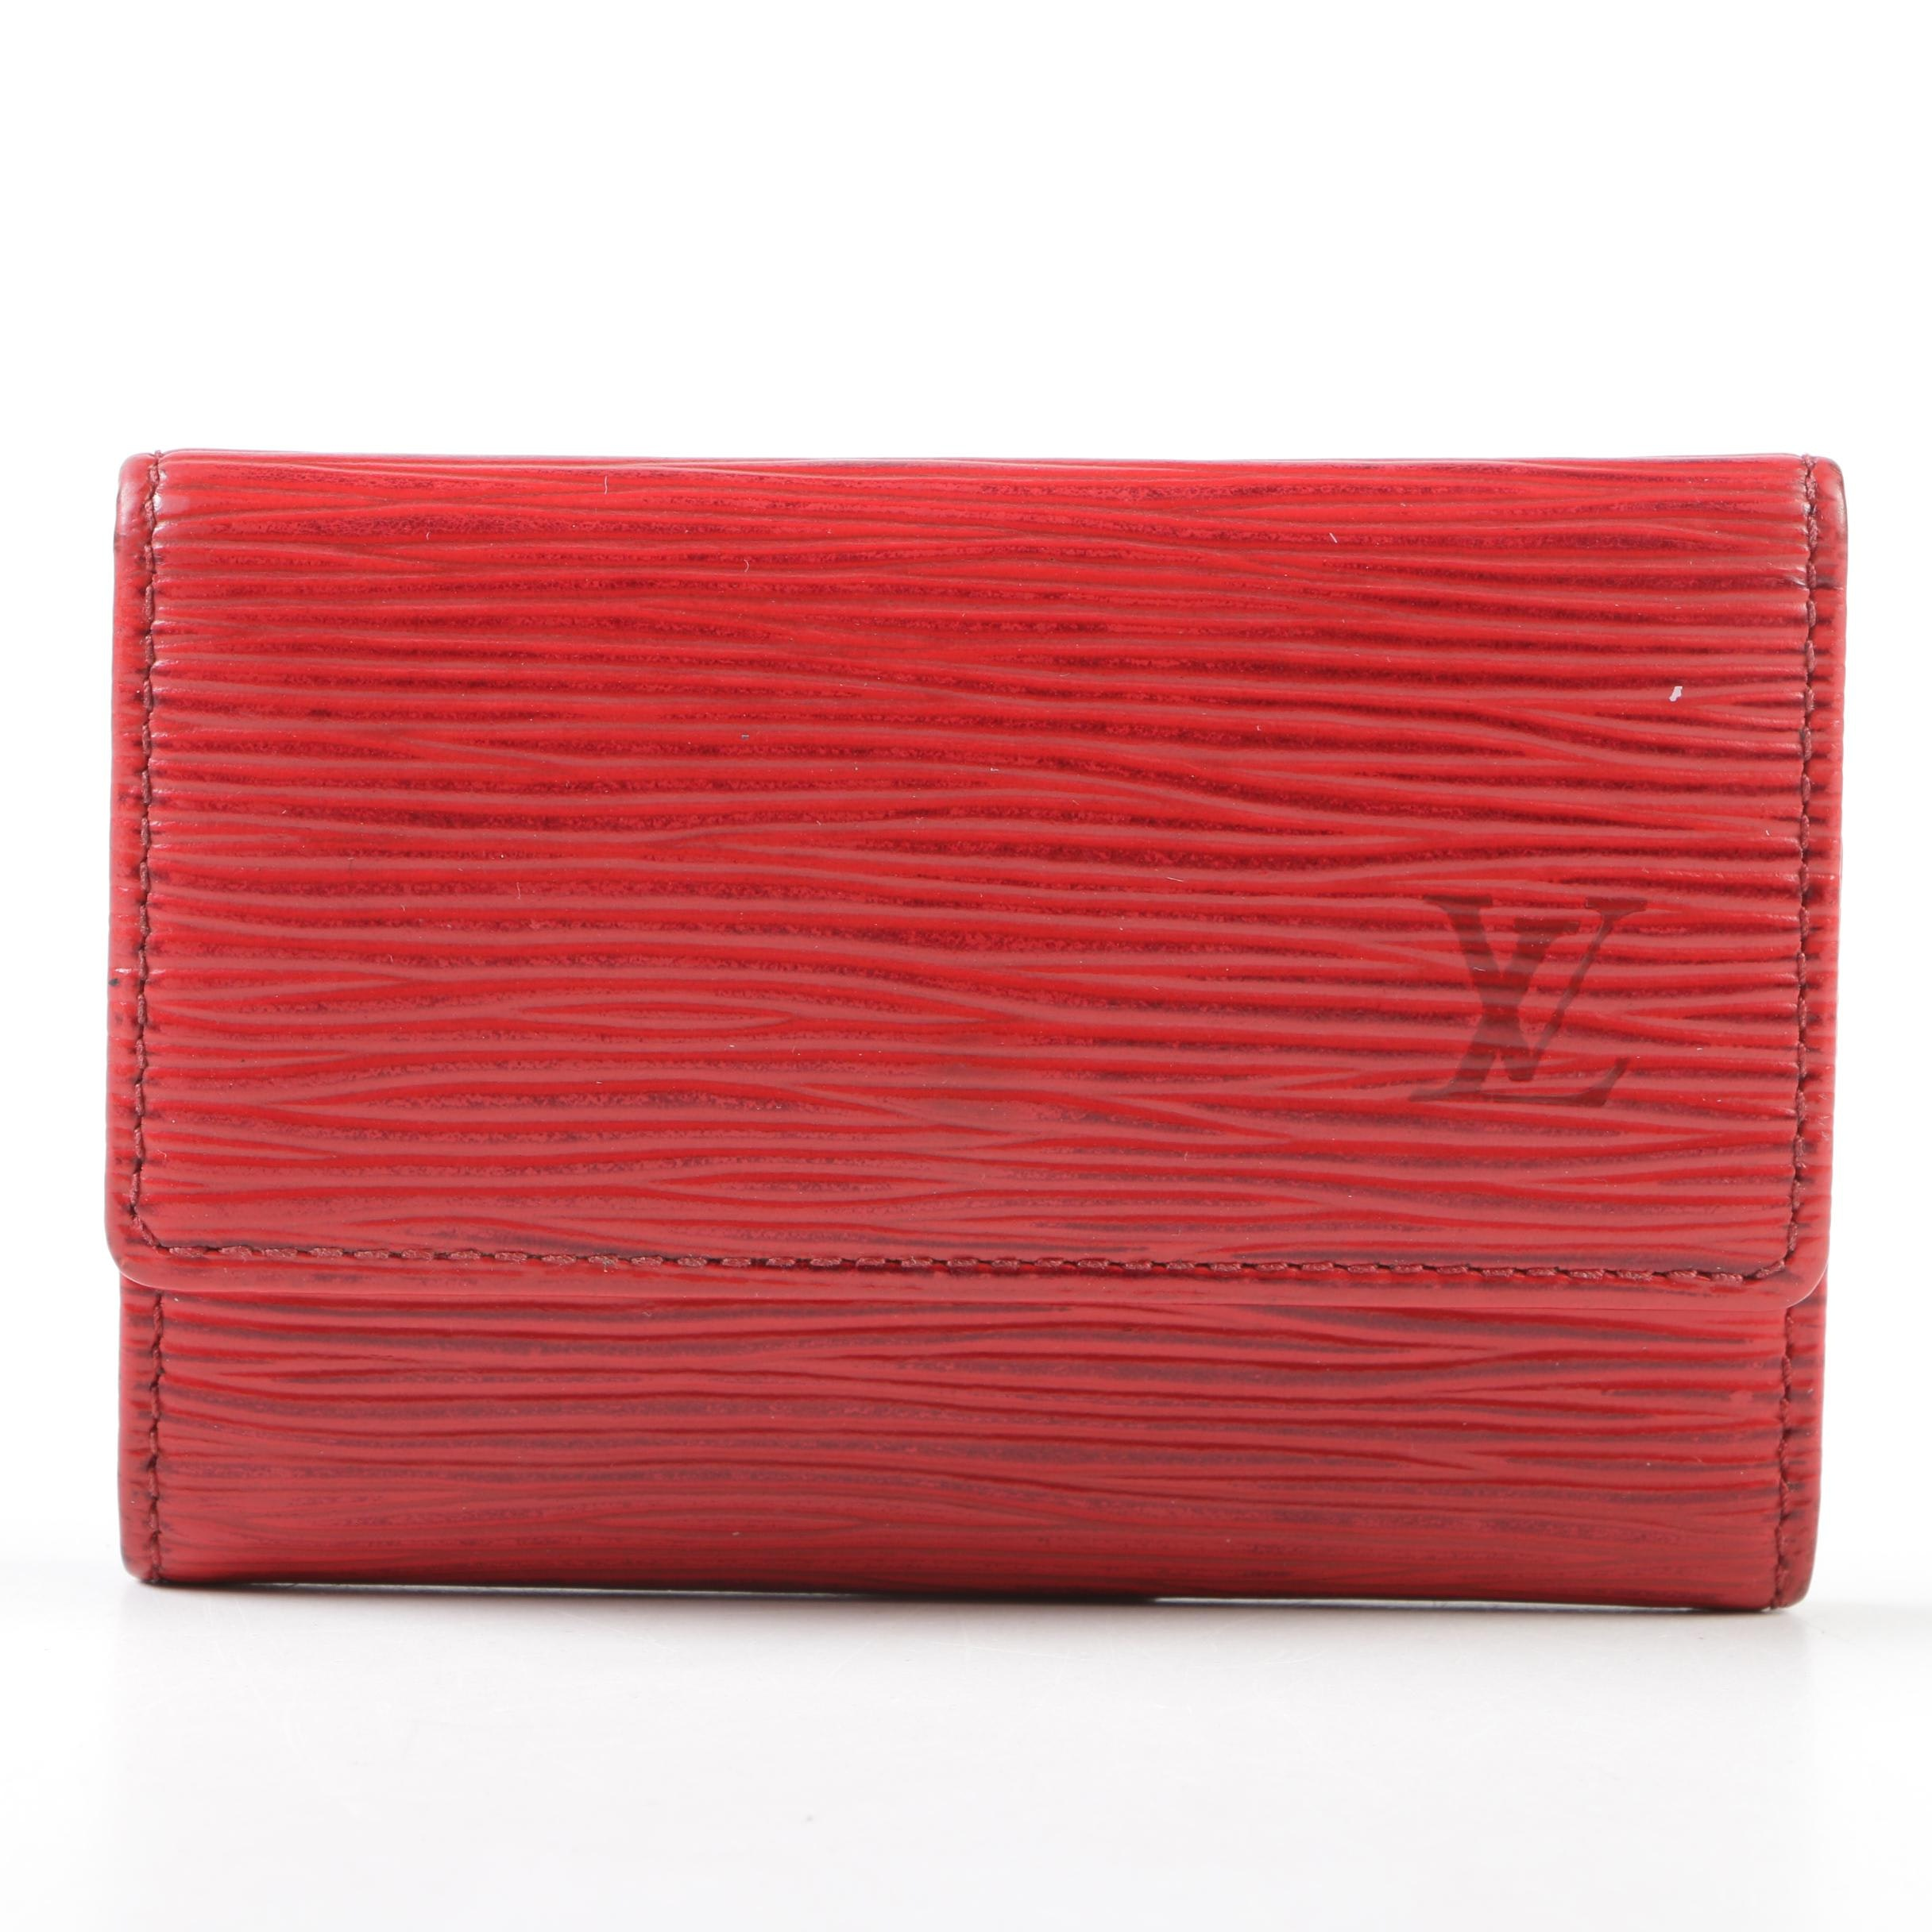 Louis Vuitton Paris Castilian Red Epi Leather Six Key Holder, Made in France